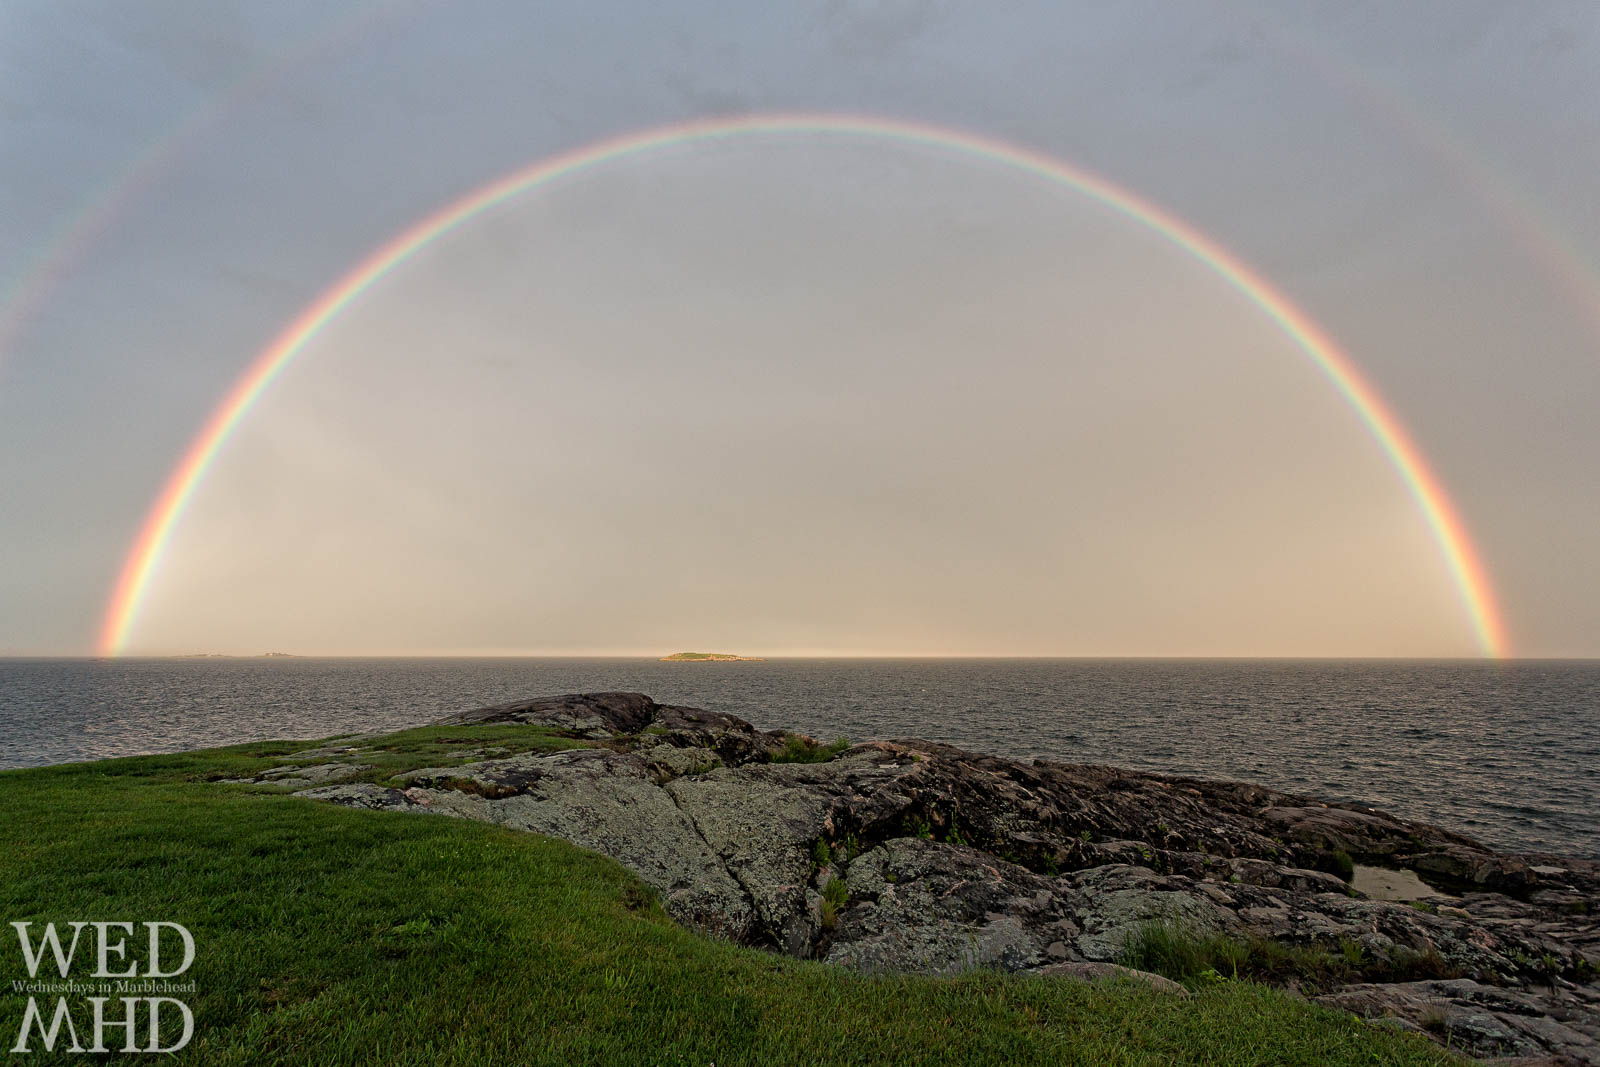 Full Rainbow over Ram's Island